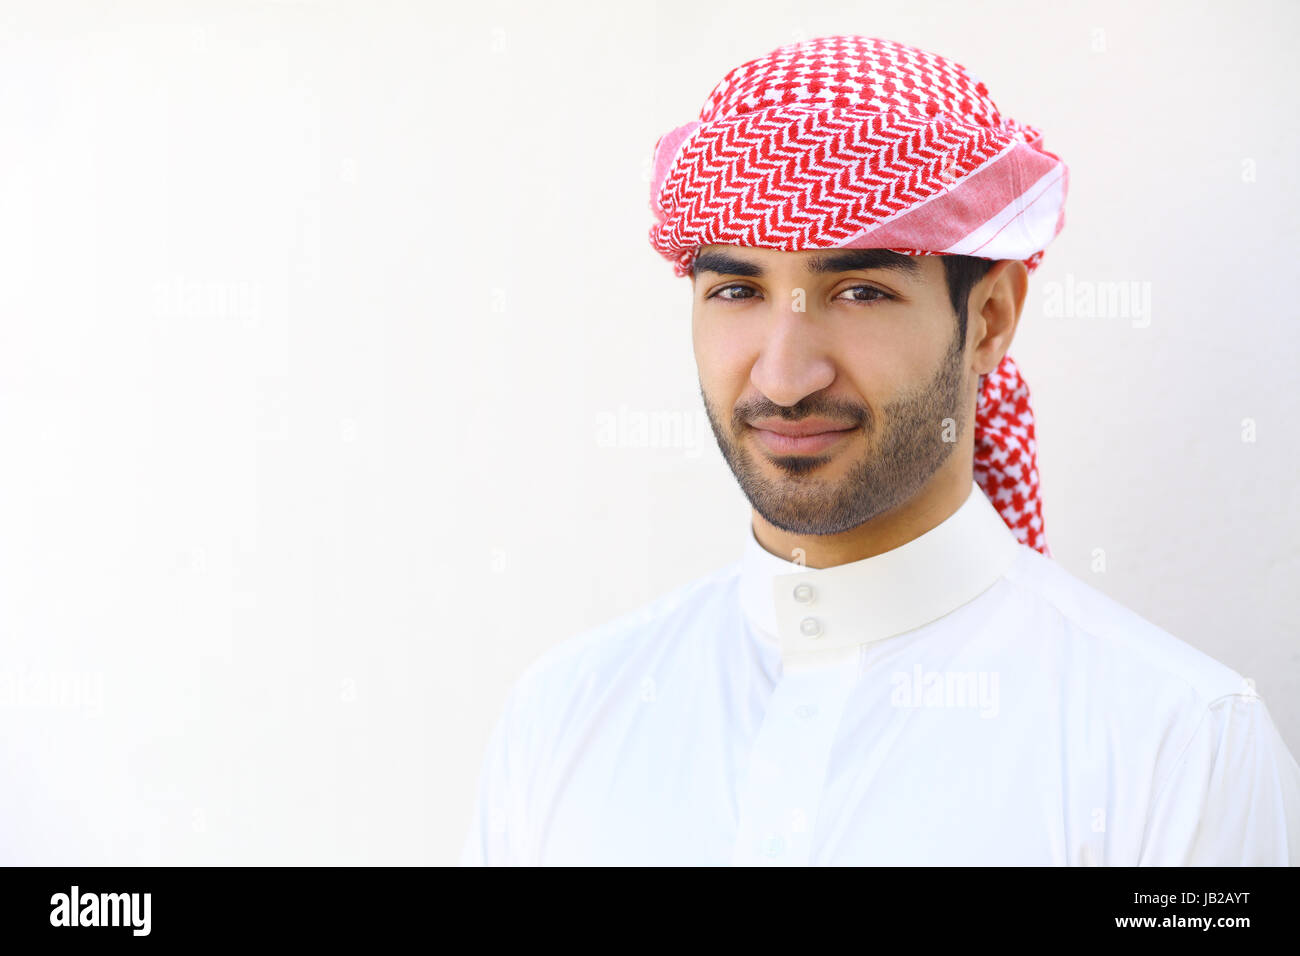 Portrait of an arab saudi man outdoor on a white wall Stock Photo